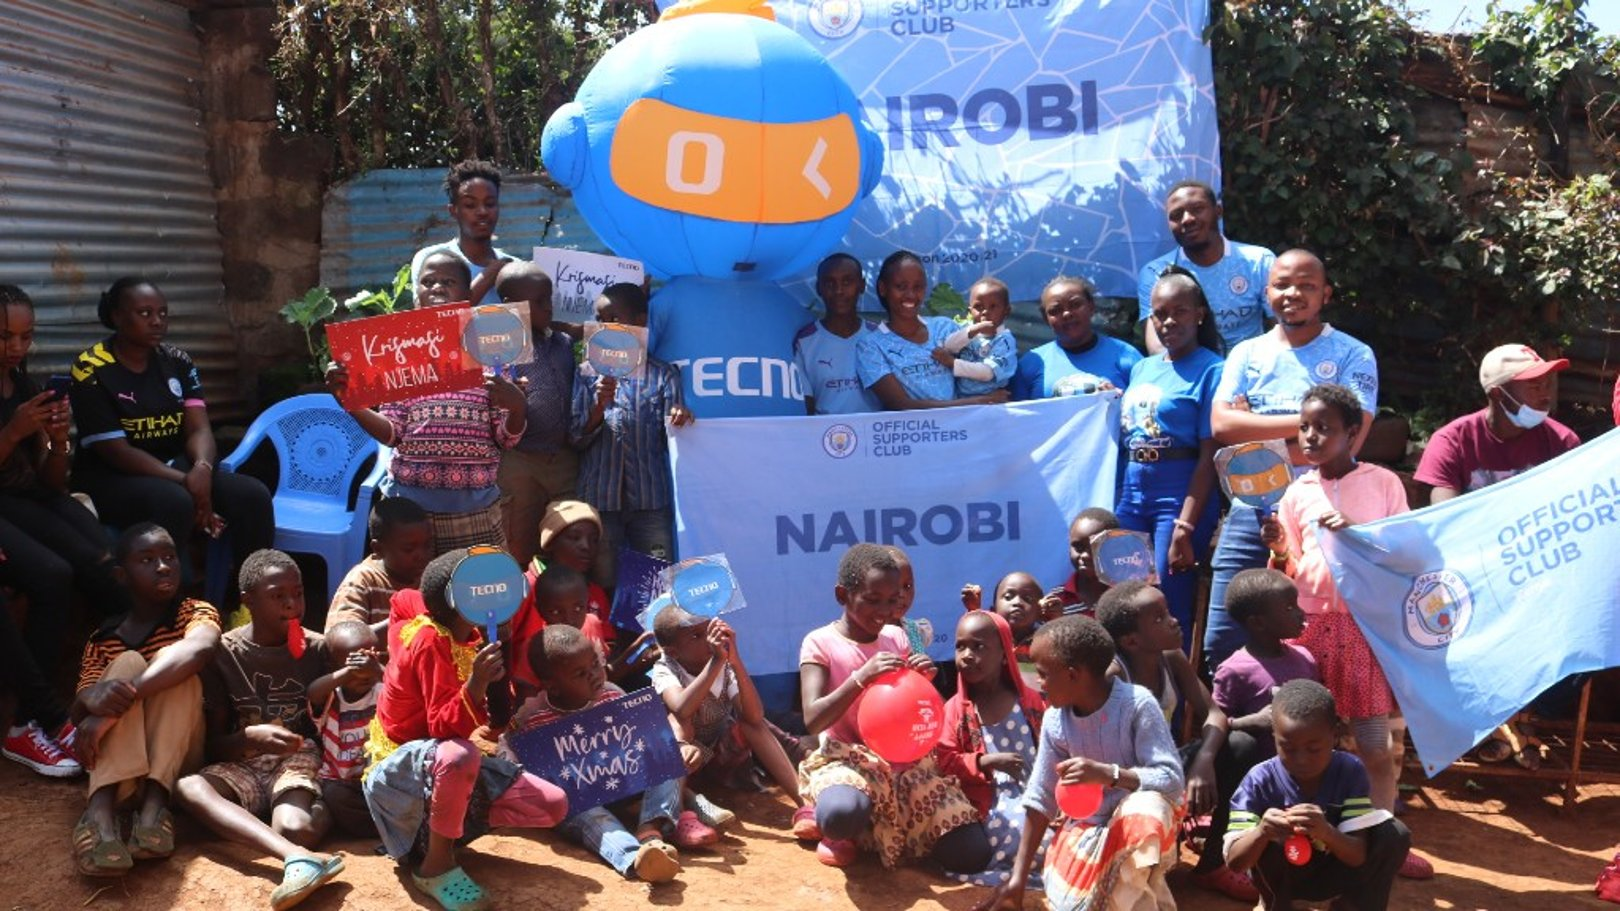 Nairobi Official Supporters Club make positive impact in local community